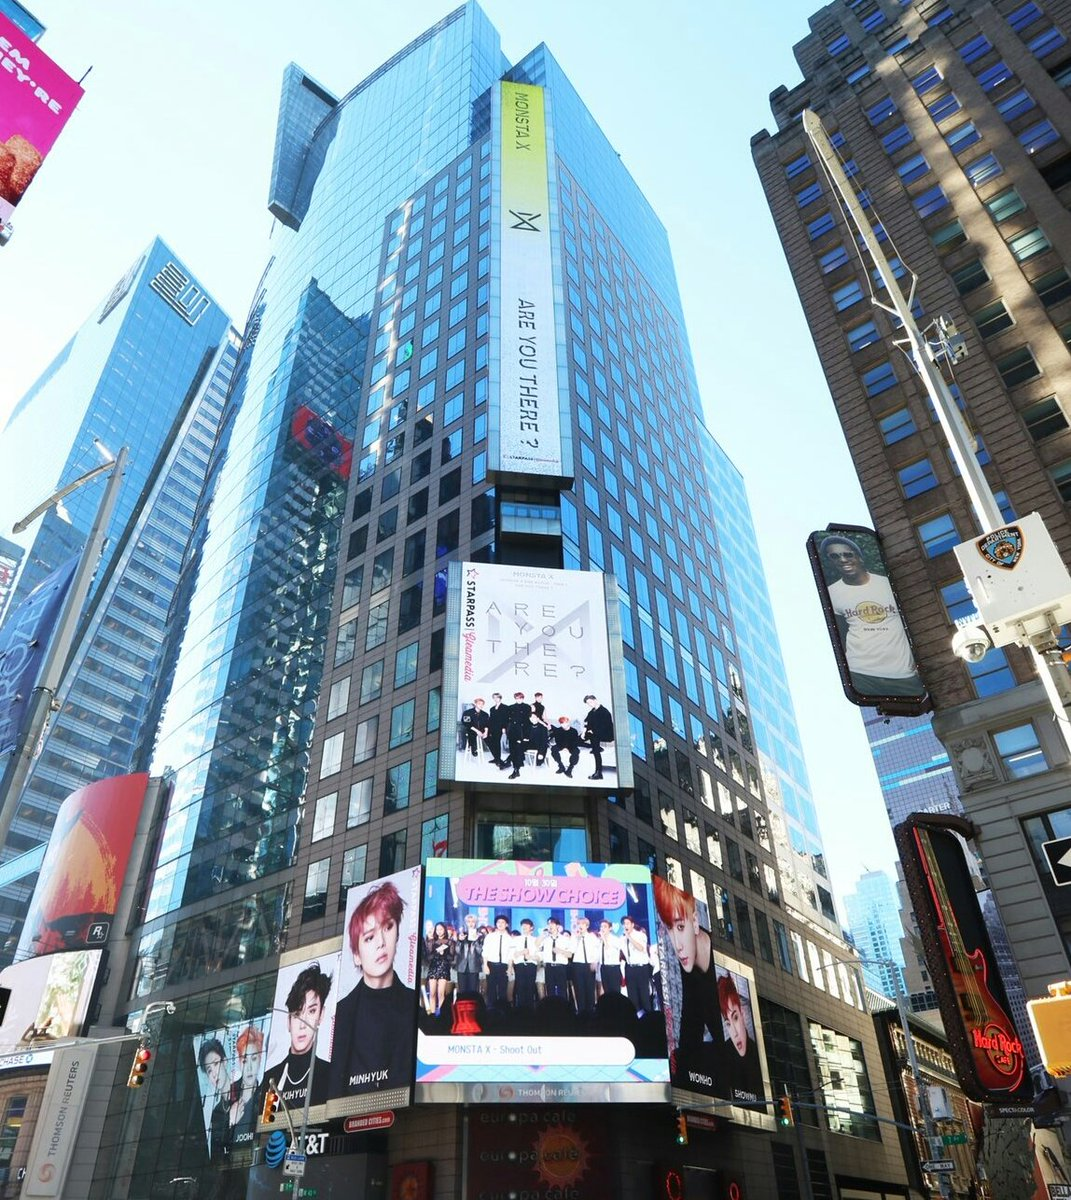 MONSTA X, SOYOU, WJSN at New York Times Square   so proud of starship family success the show is the best <br>http://pic.twitter.com/JlGcIBSHWU